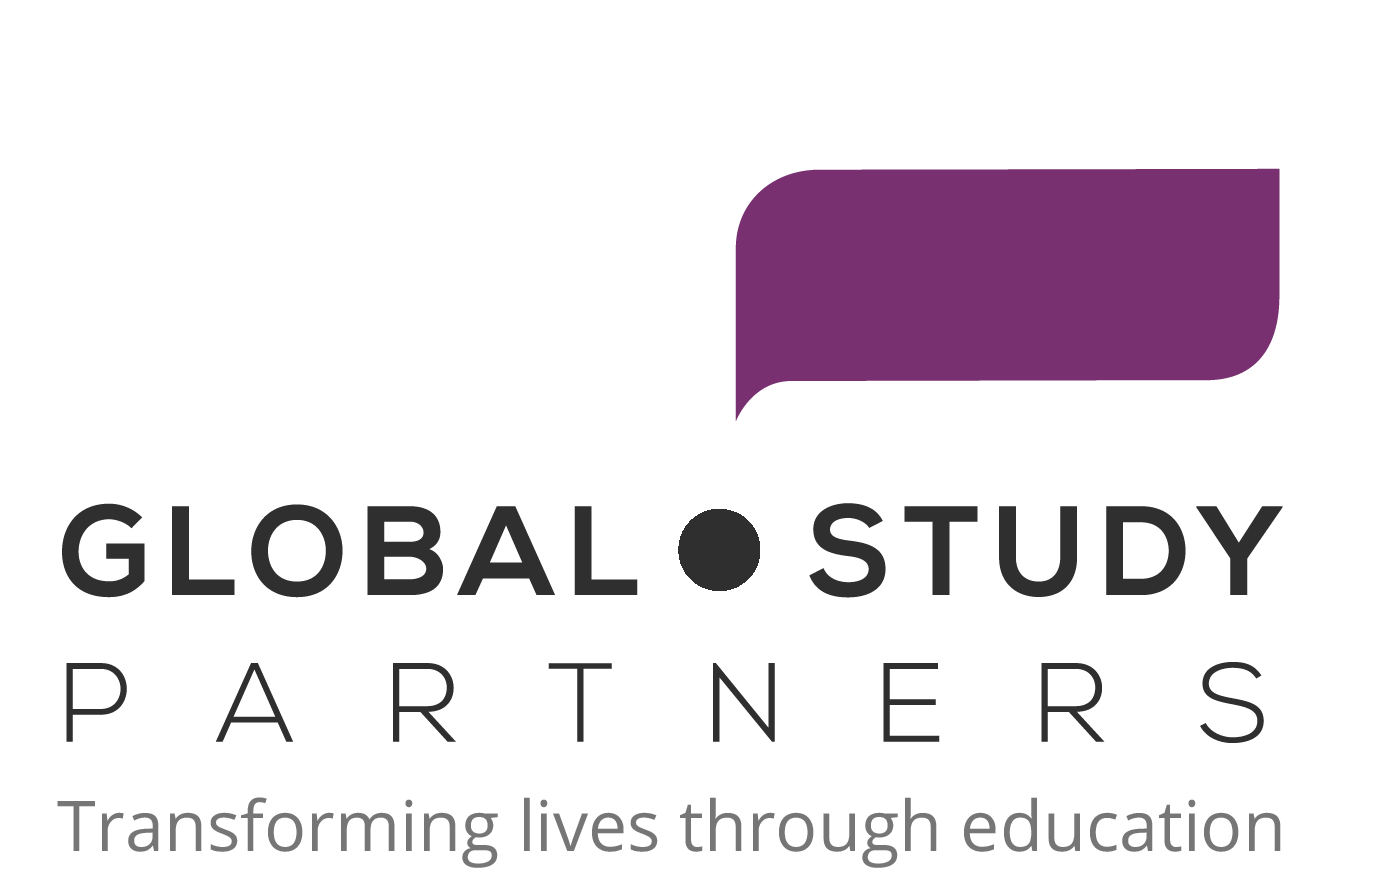 636143ac 2520 43e9 9950 9ba5b7f76804 global study partners logo c